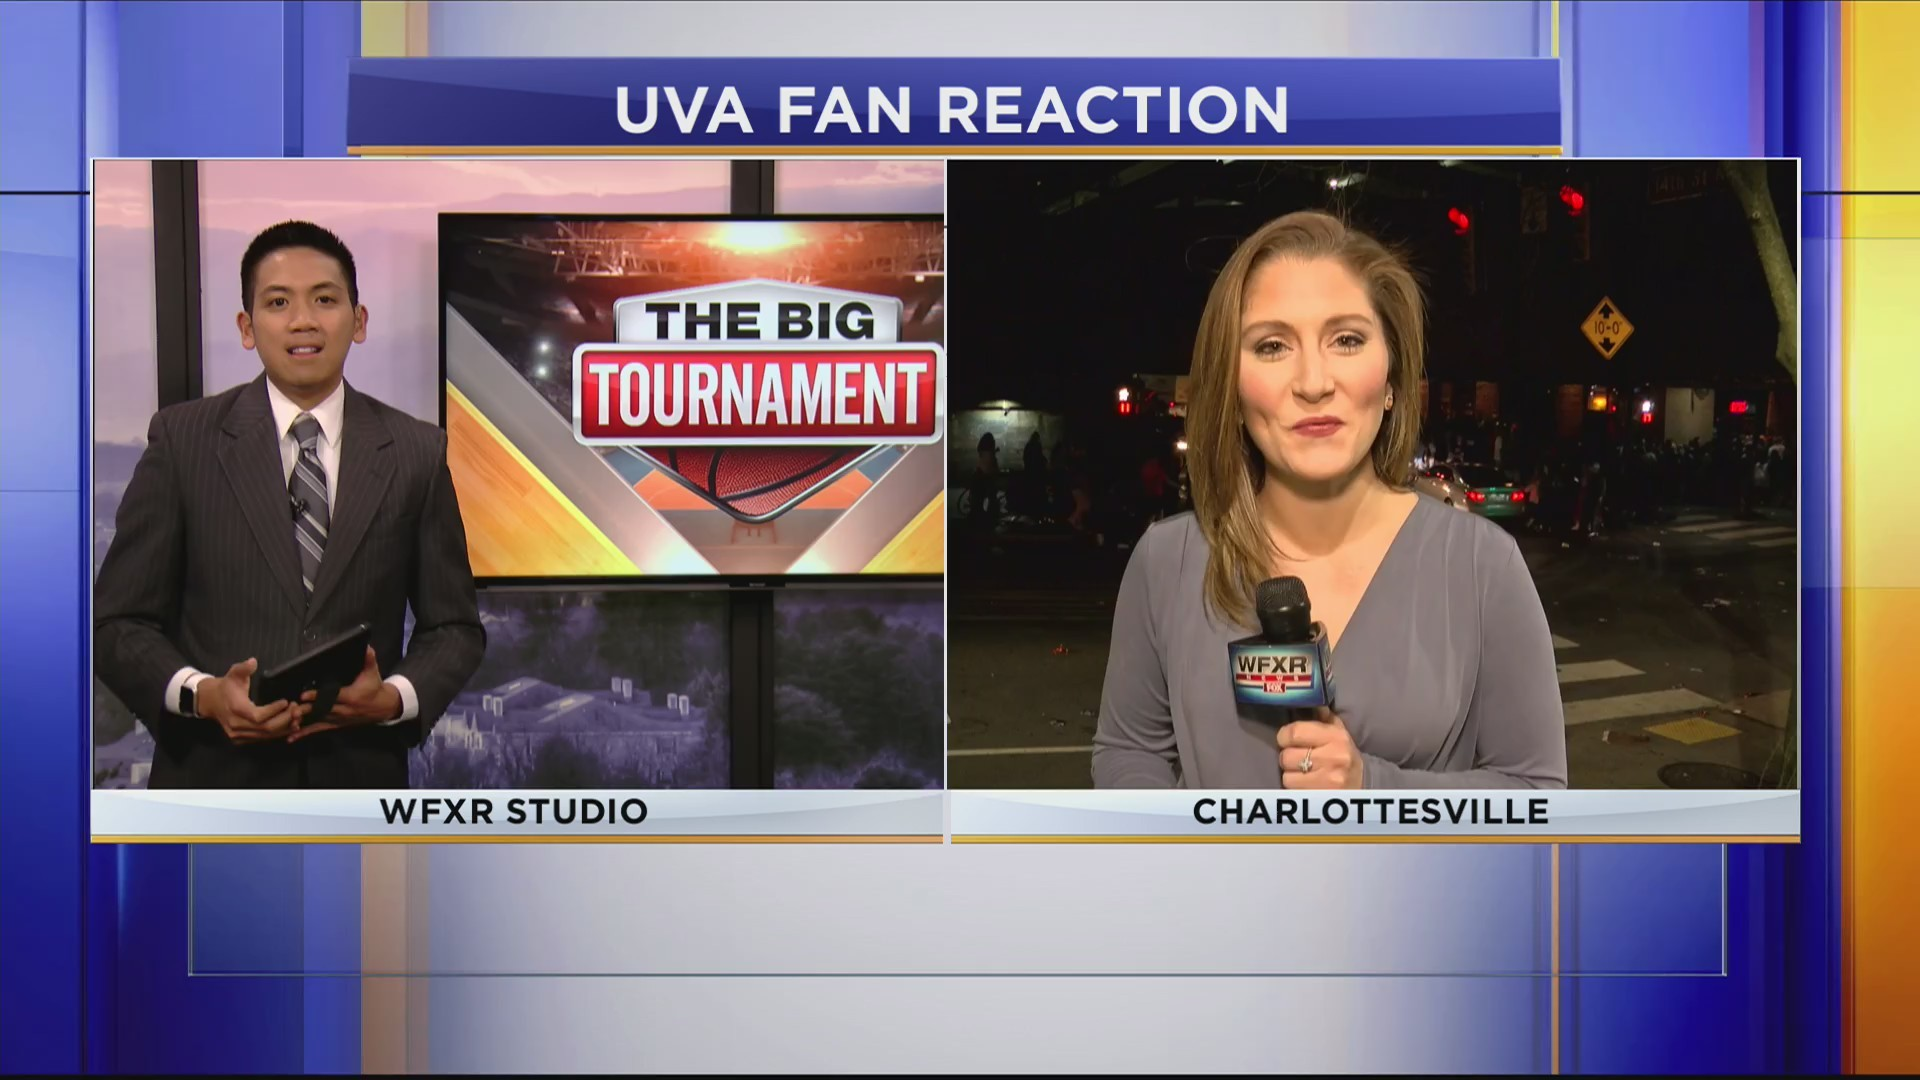 Party Continues In Charlottesville Hours After UVA Victory